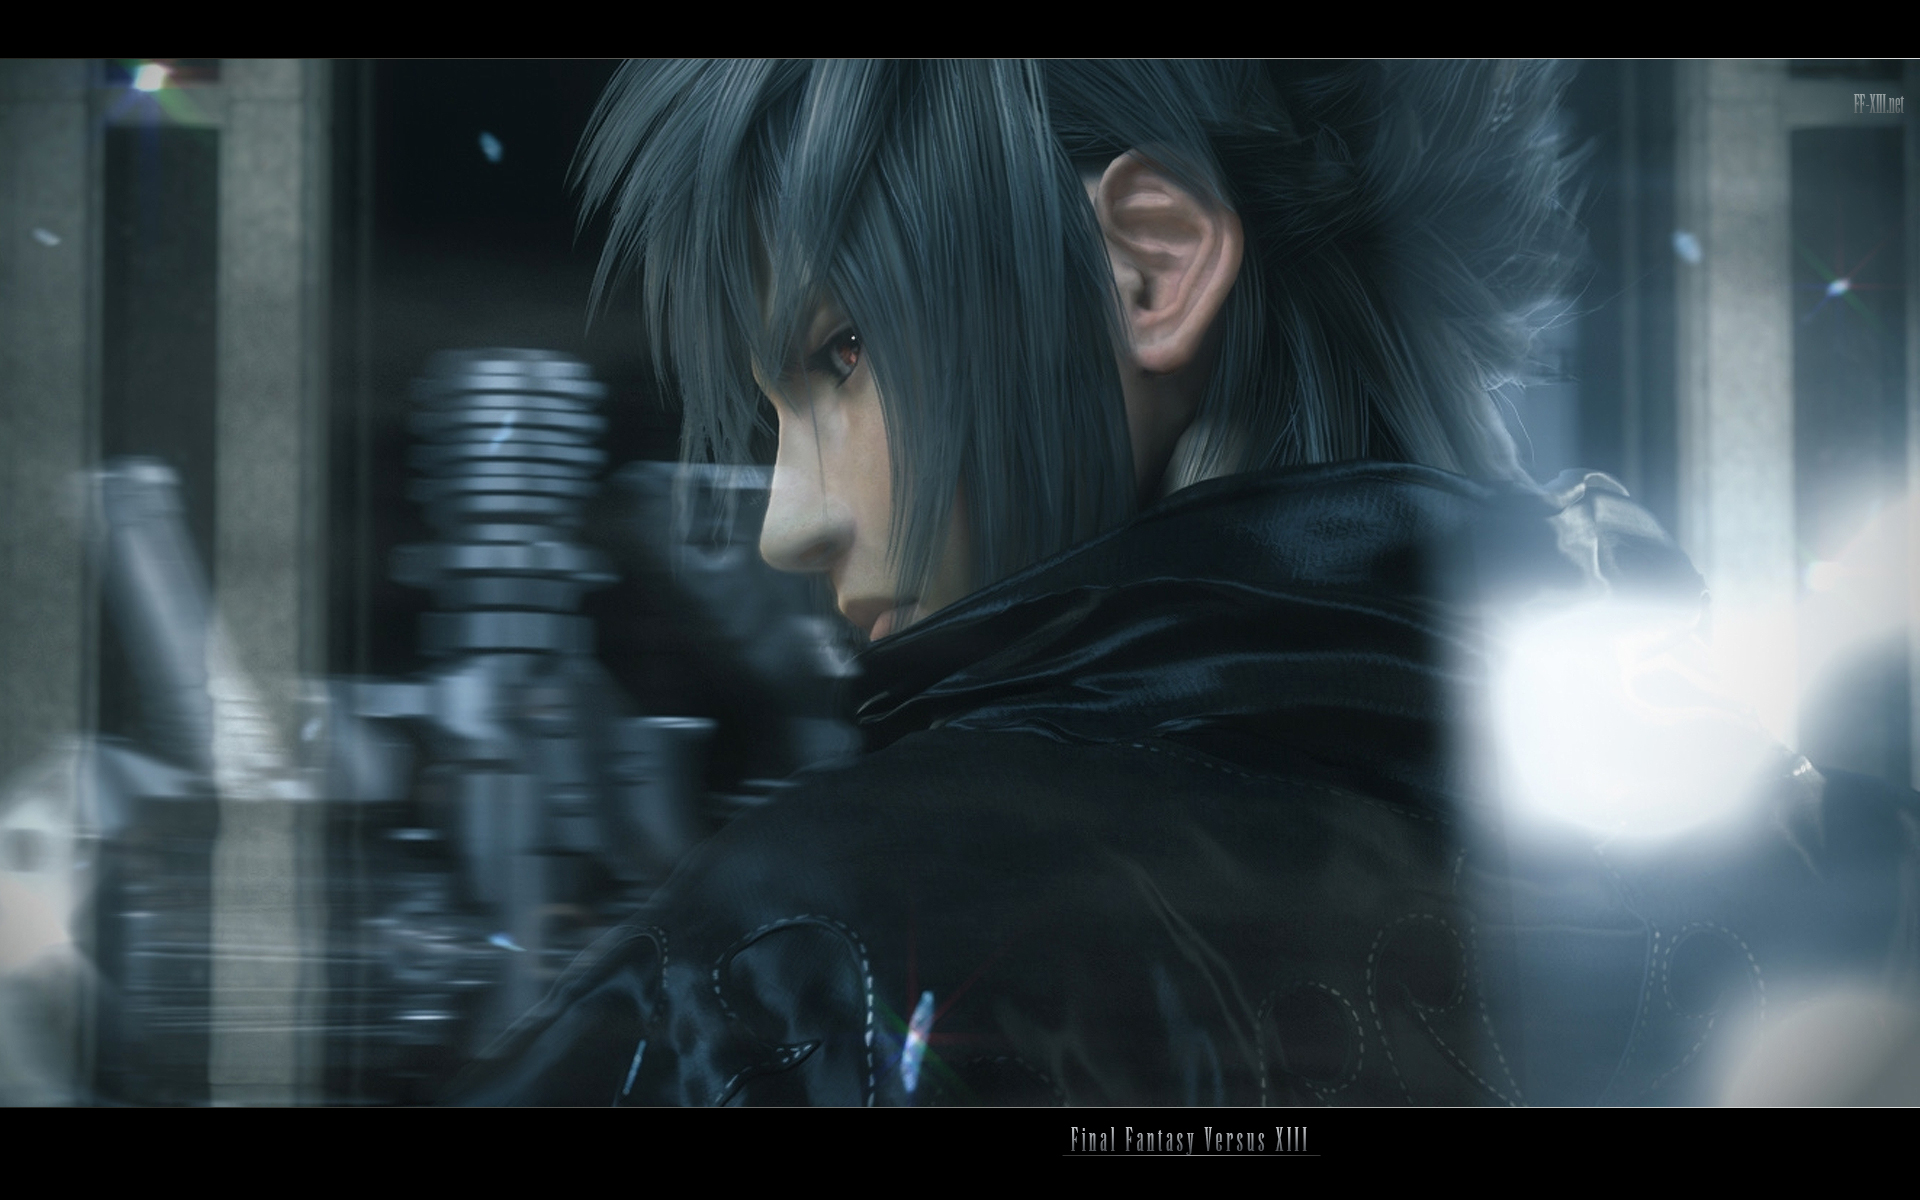 HQ Final Fantasy XIII Wallpaper   HQ Wallpapers 1920x1200